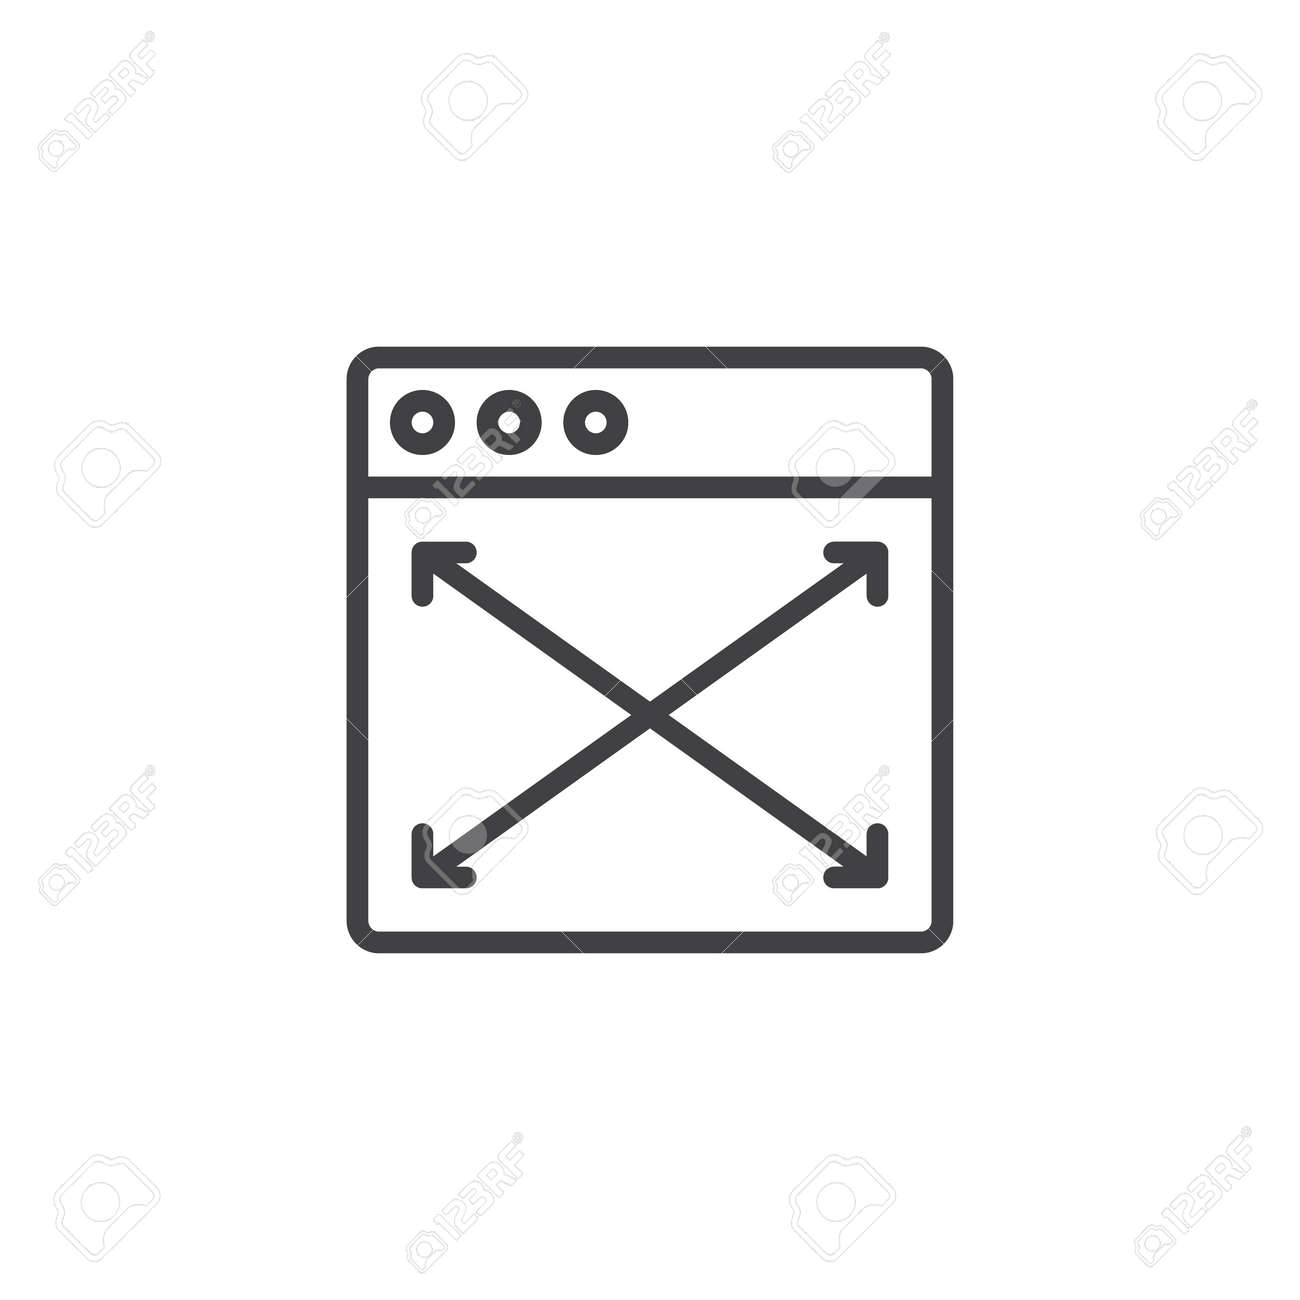 Browser window size outline icon  linear style sign for mobile